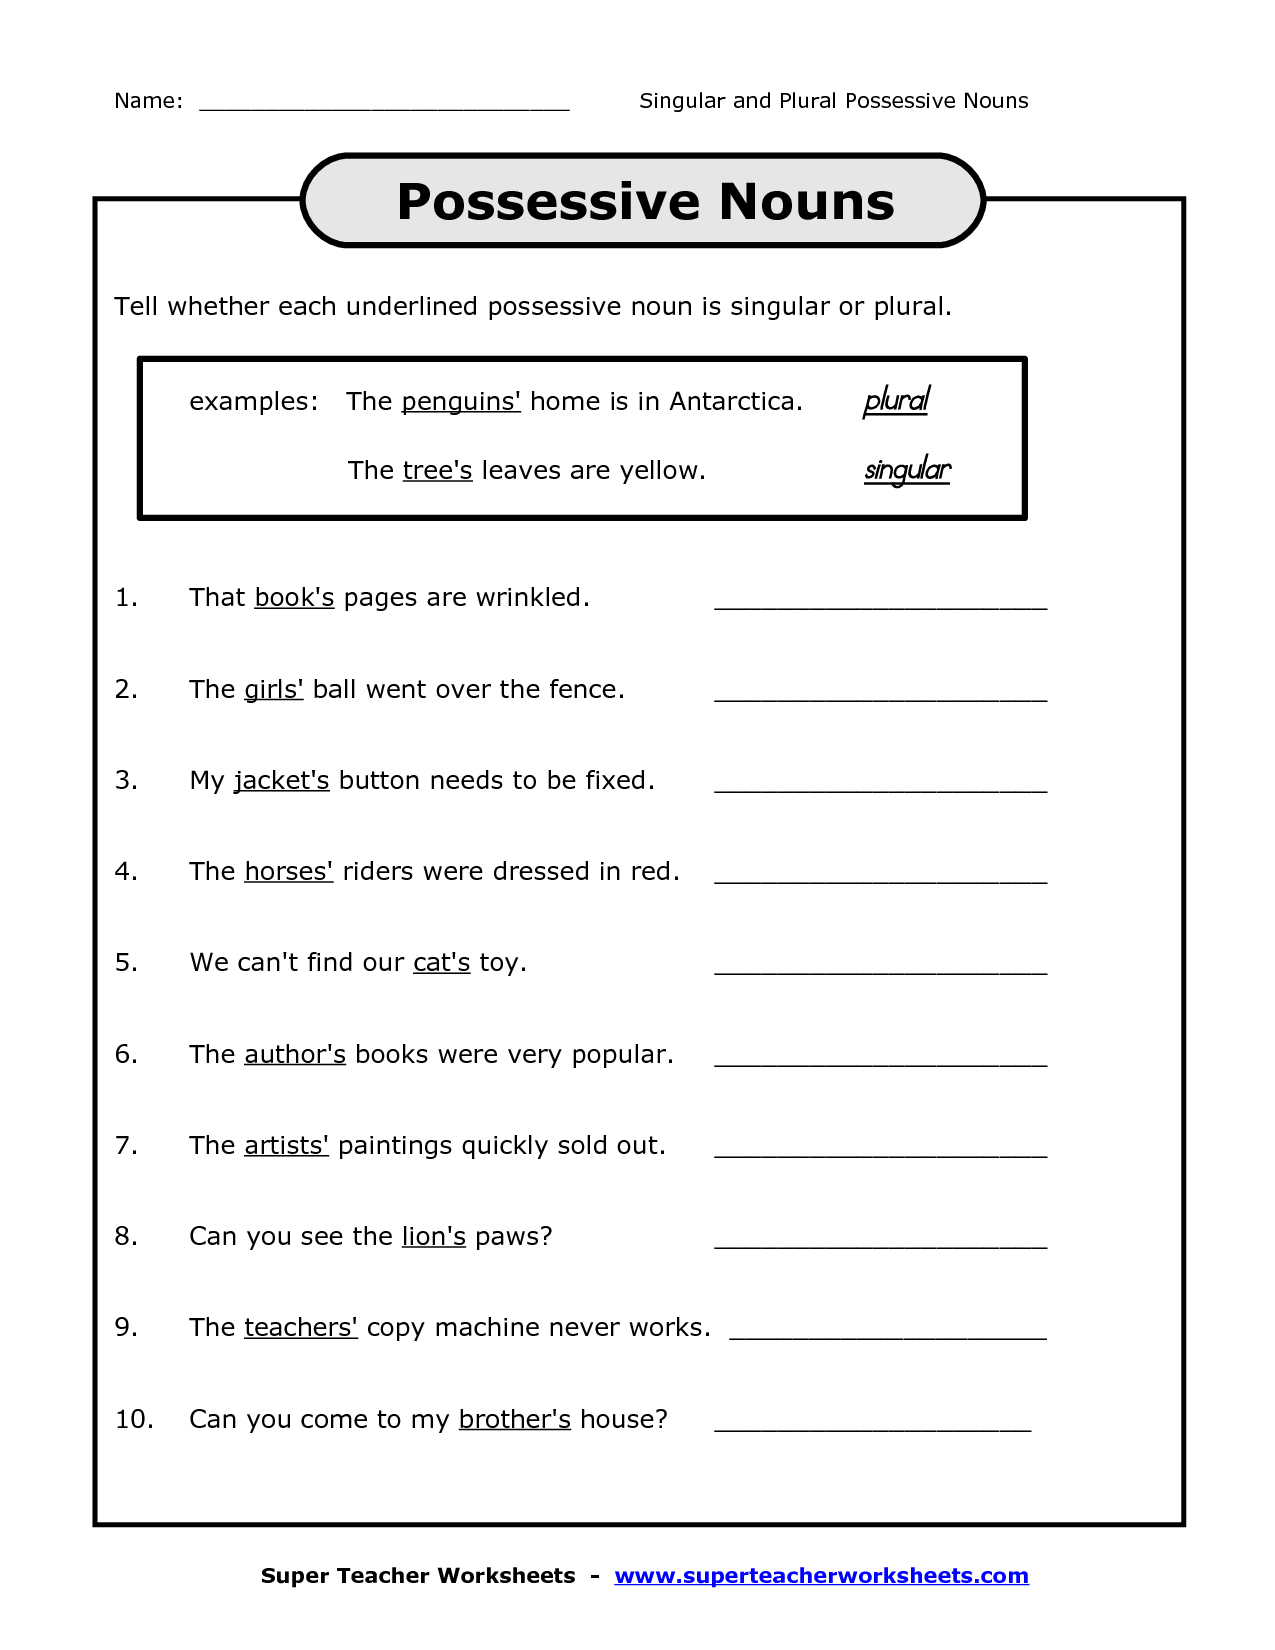 19 Best Images Of Pronouns For Grammar Worksheets For 3rd